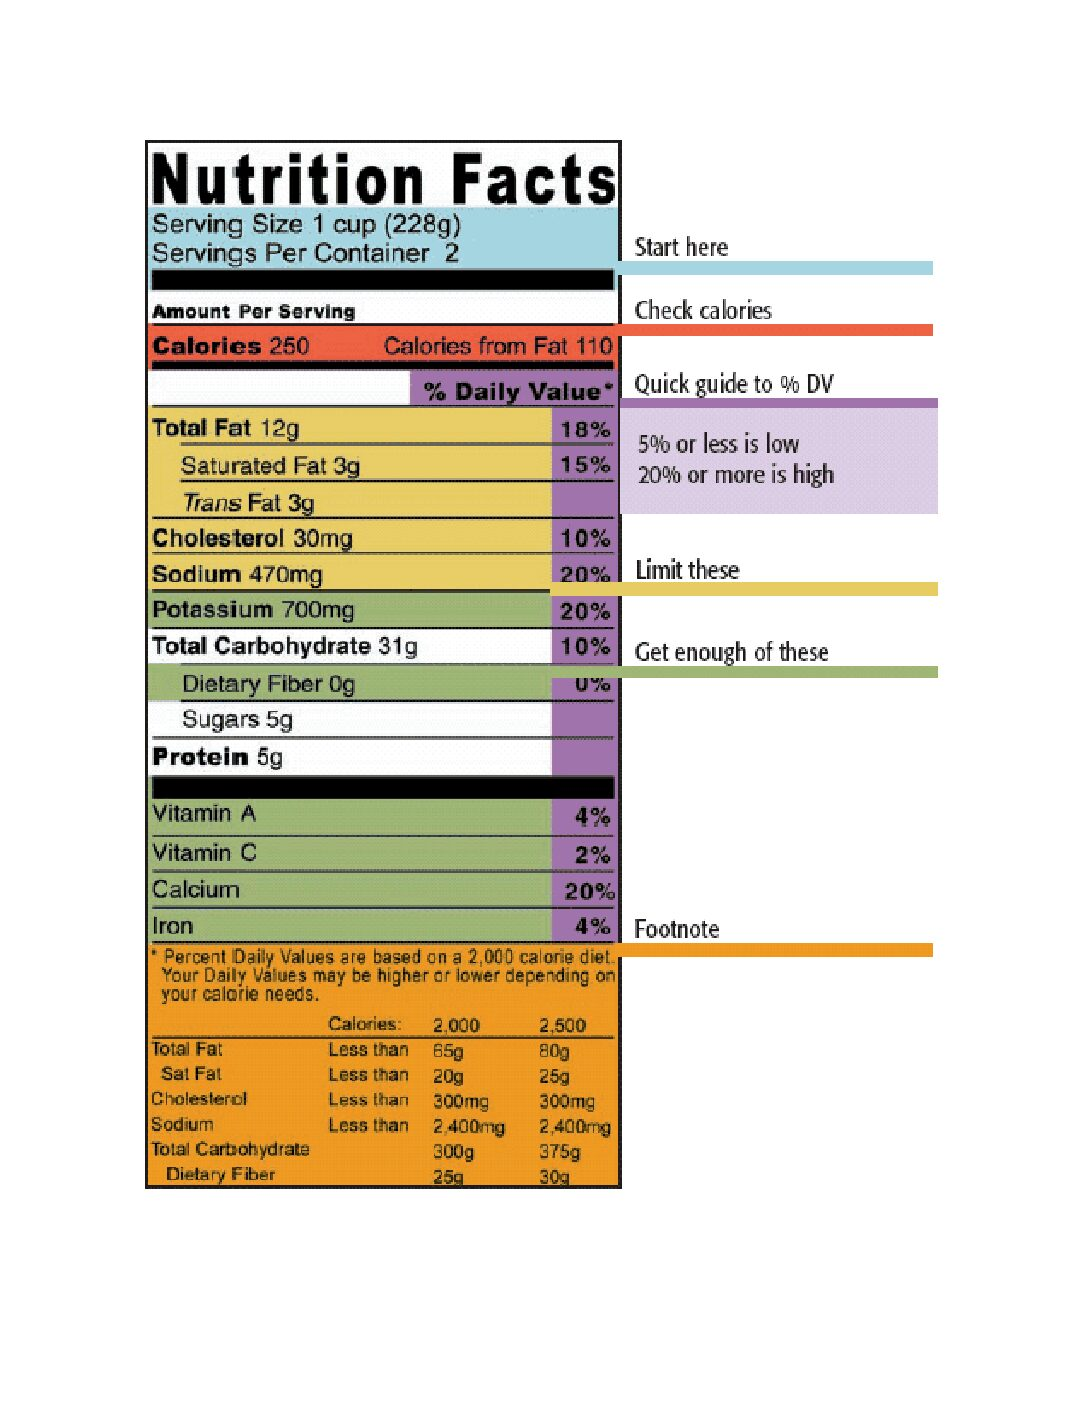 Why It's Important to Read Food labels